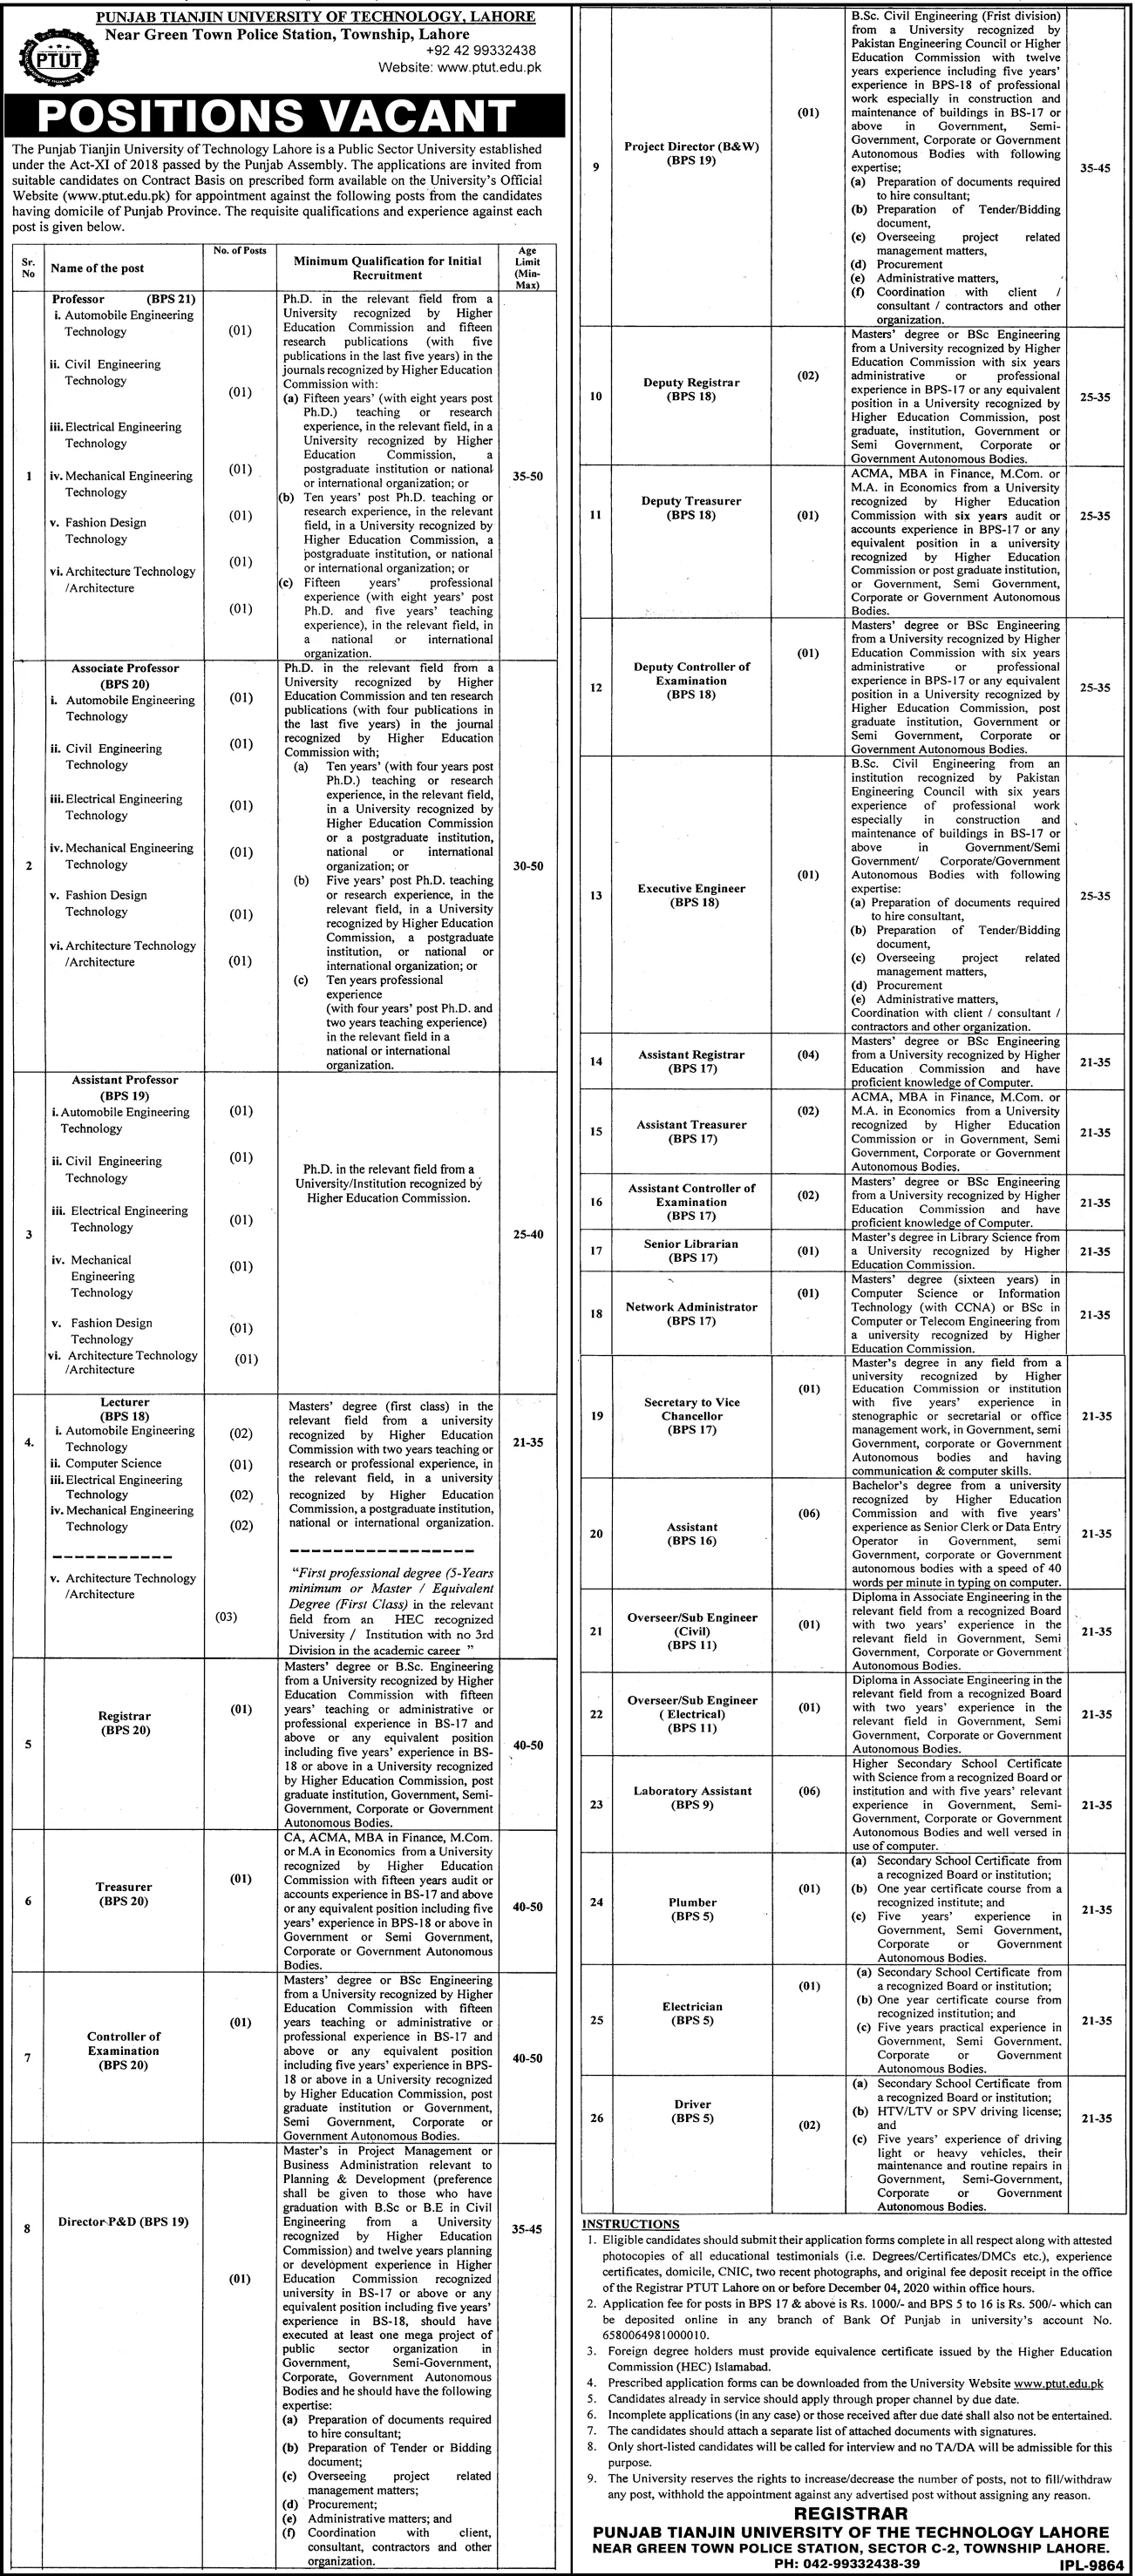 Punjab Tianjin University of Technology Lahore Jobs November 2020